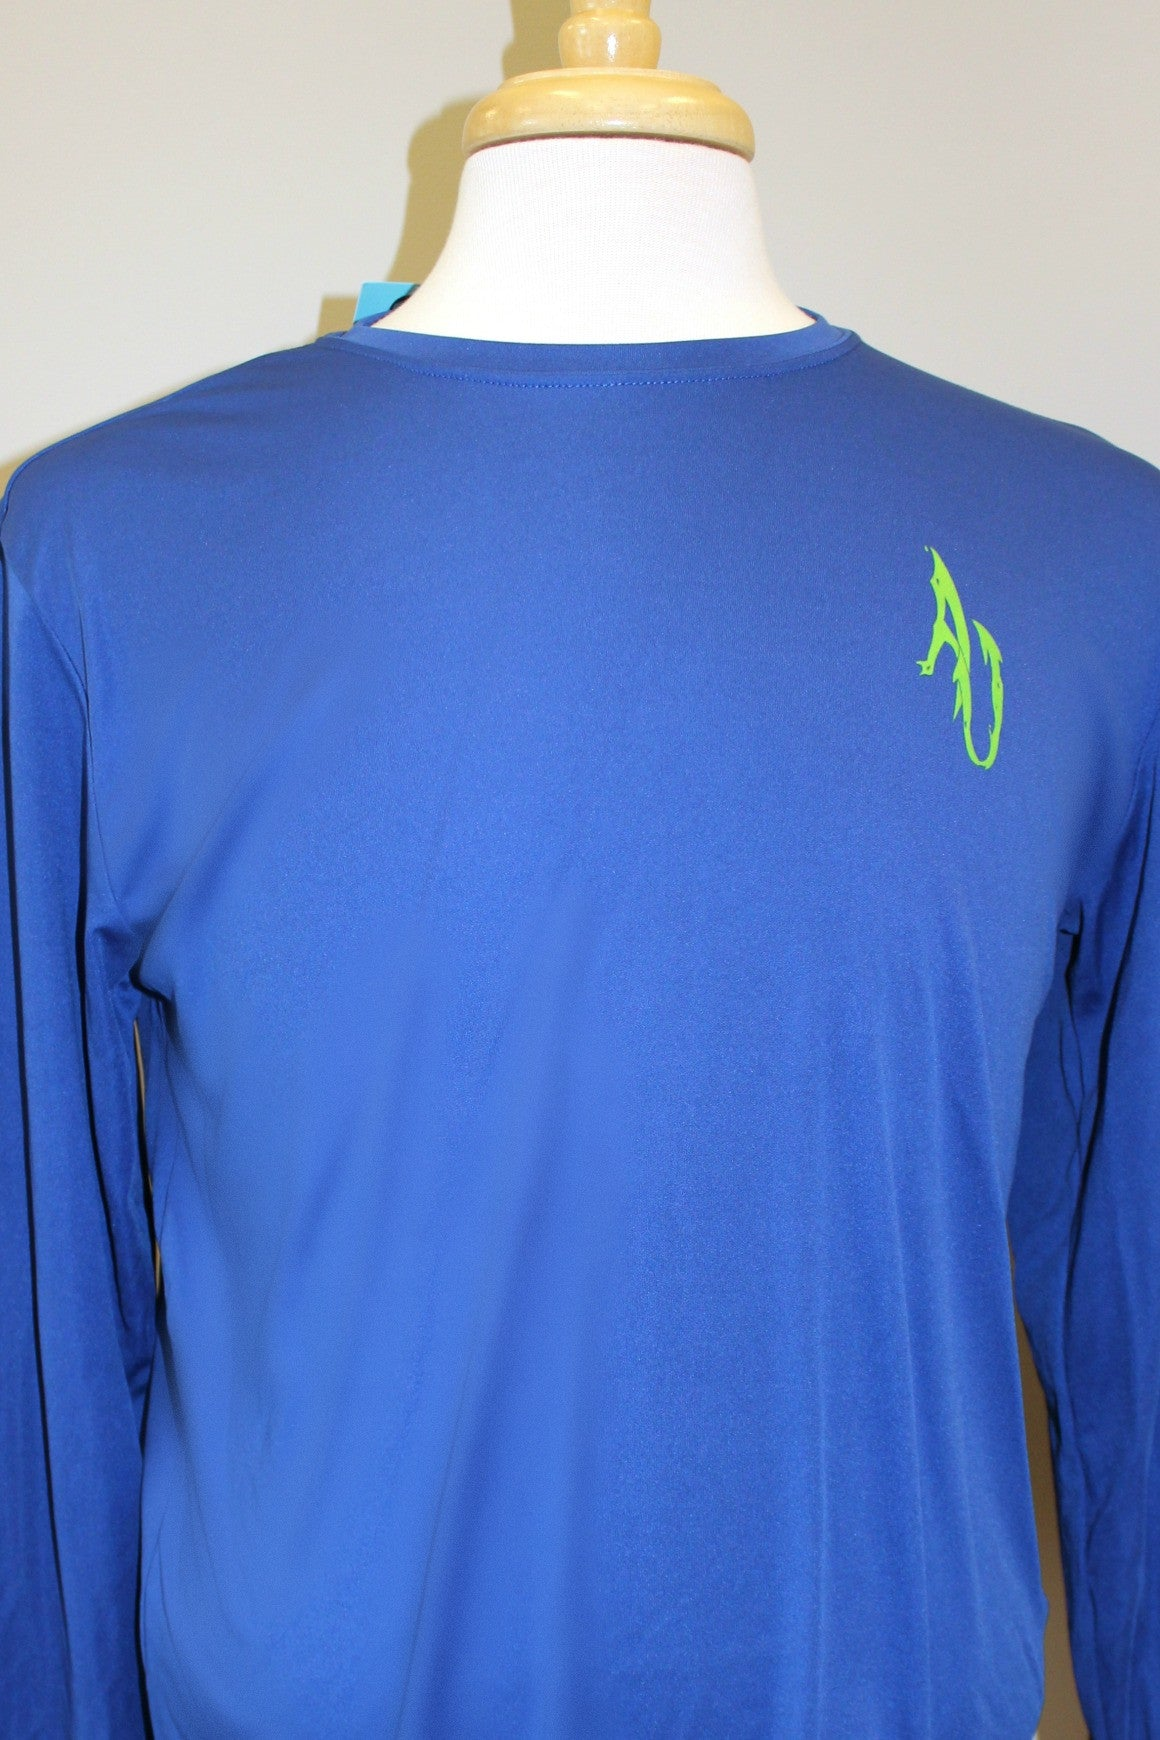 Angler Up: Long Sleeve Performance Tee, Blue/Green